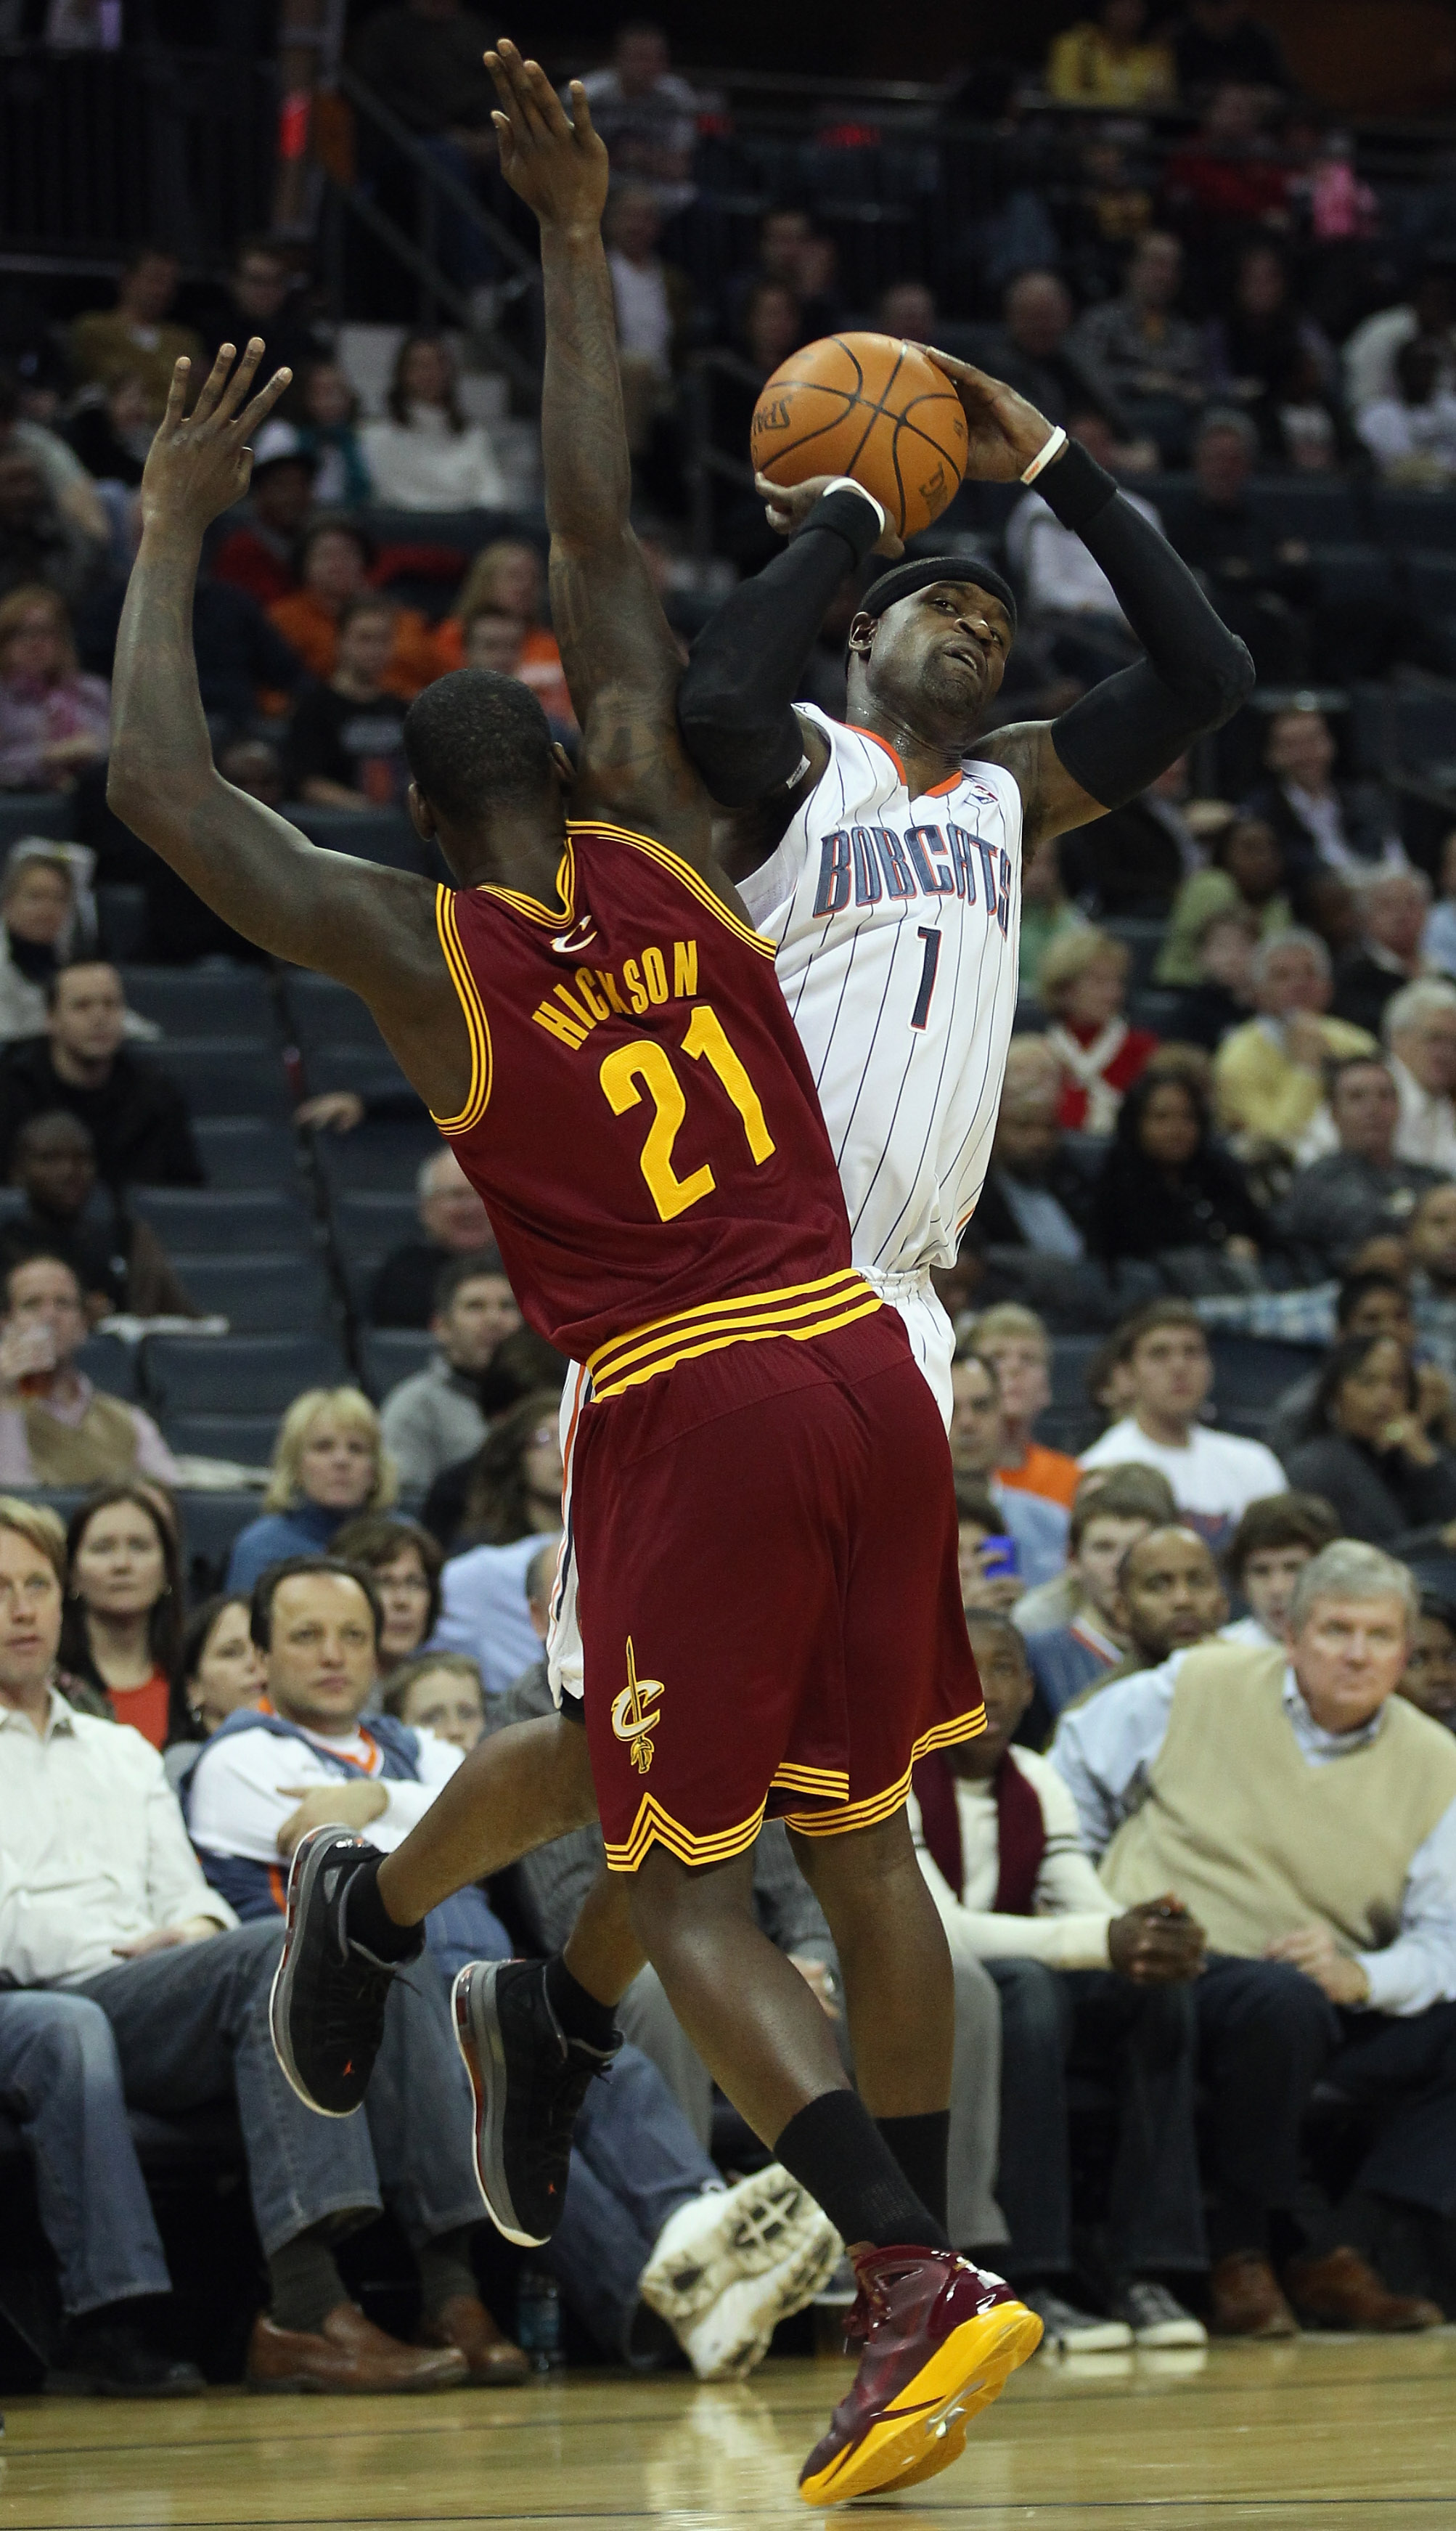 CHARLOTTE, NC - DECEMBER 29:  Stephen Jackson #1 of the Charlotte Bobcats is hit as he shoots by J.J. Hickson #21 of the Cleveland Cavaliers during their game at Time Warner Cable Arena on December 29, 2010 in Charlotte, North Carolina. NOTE TO USER: User